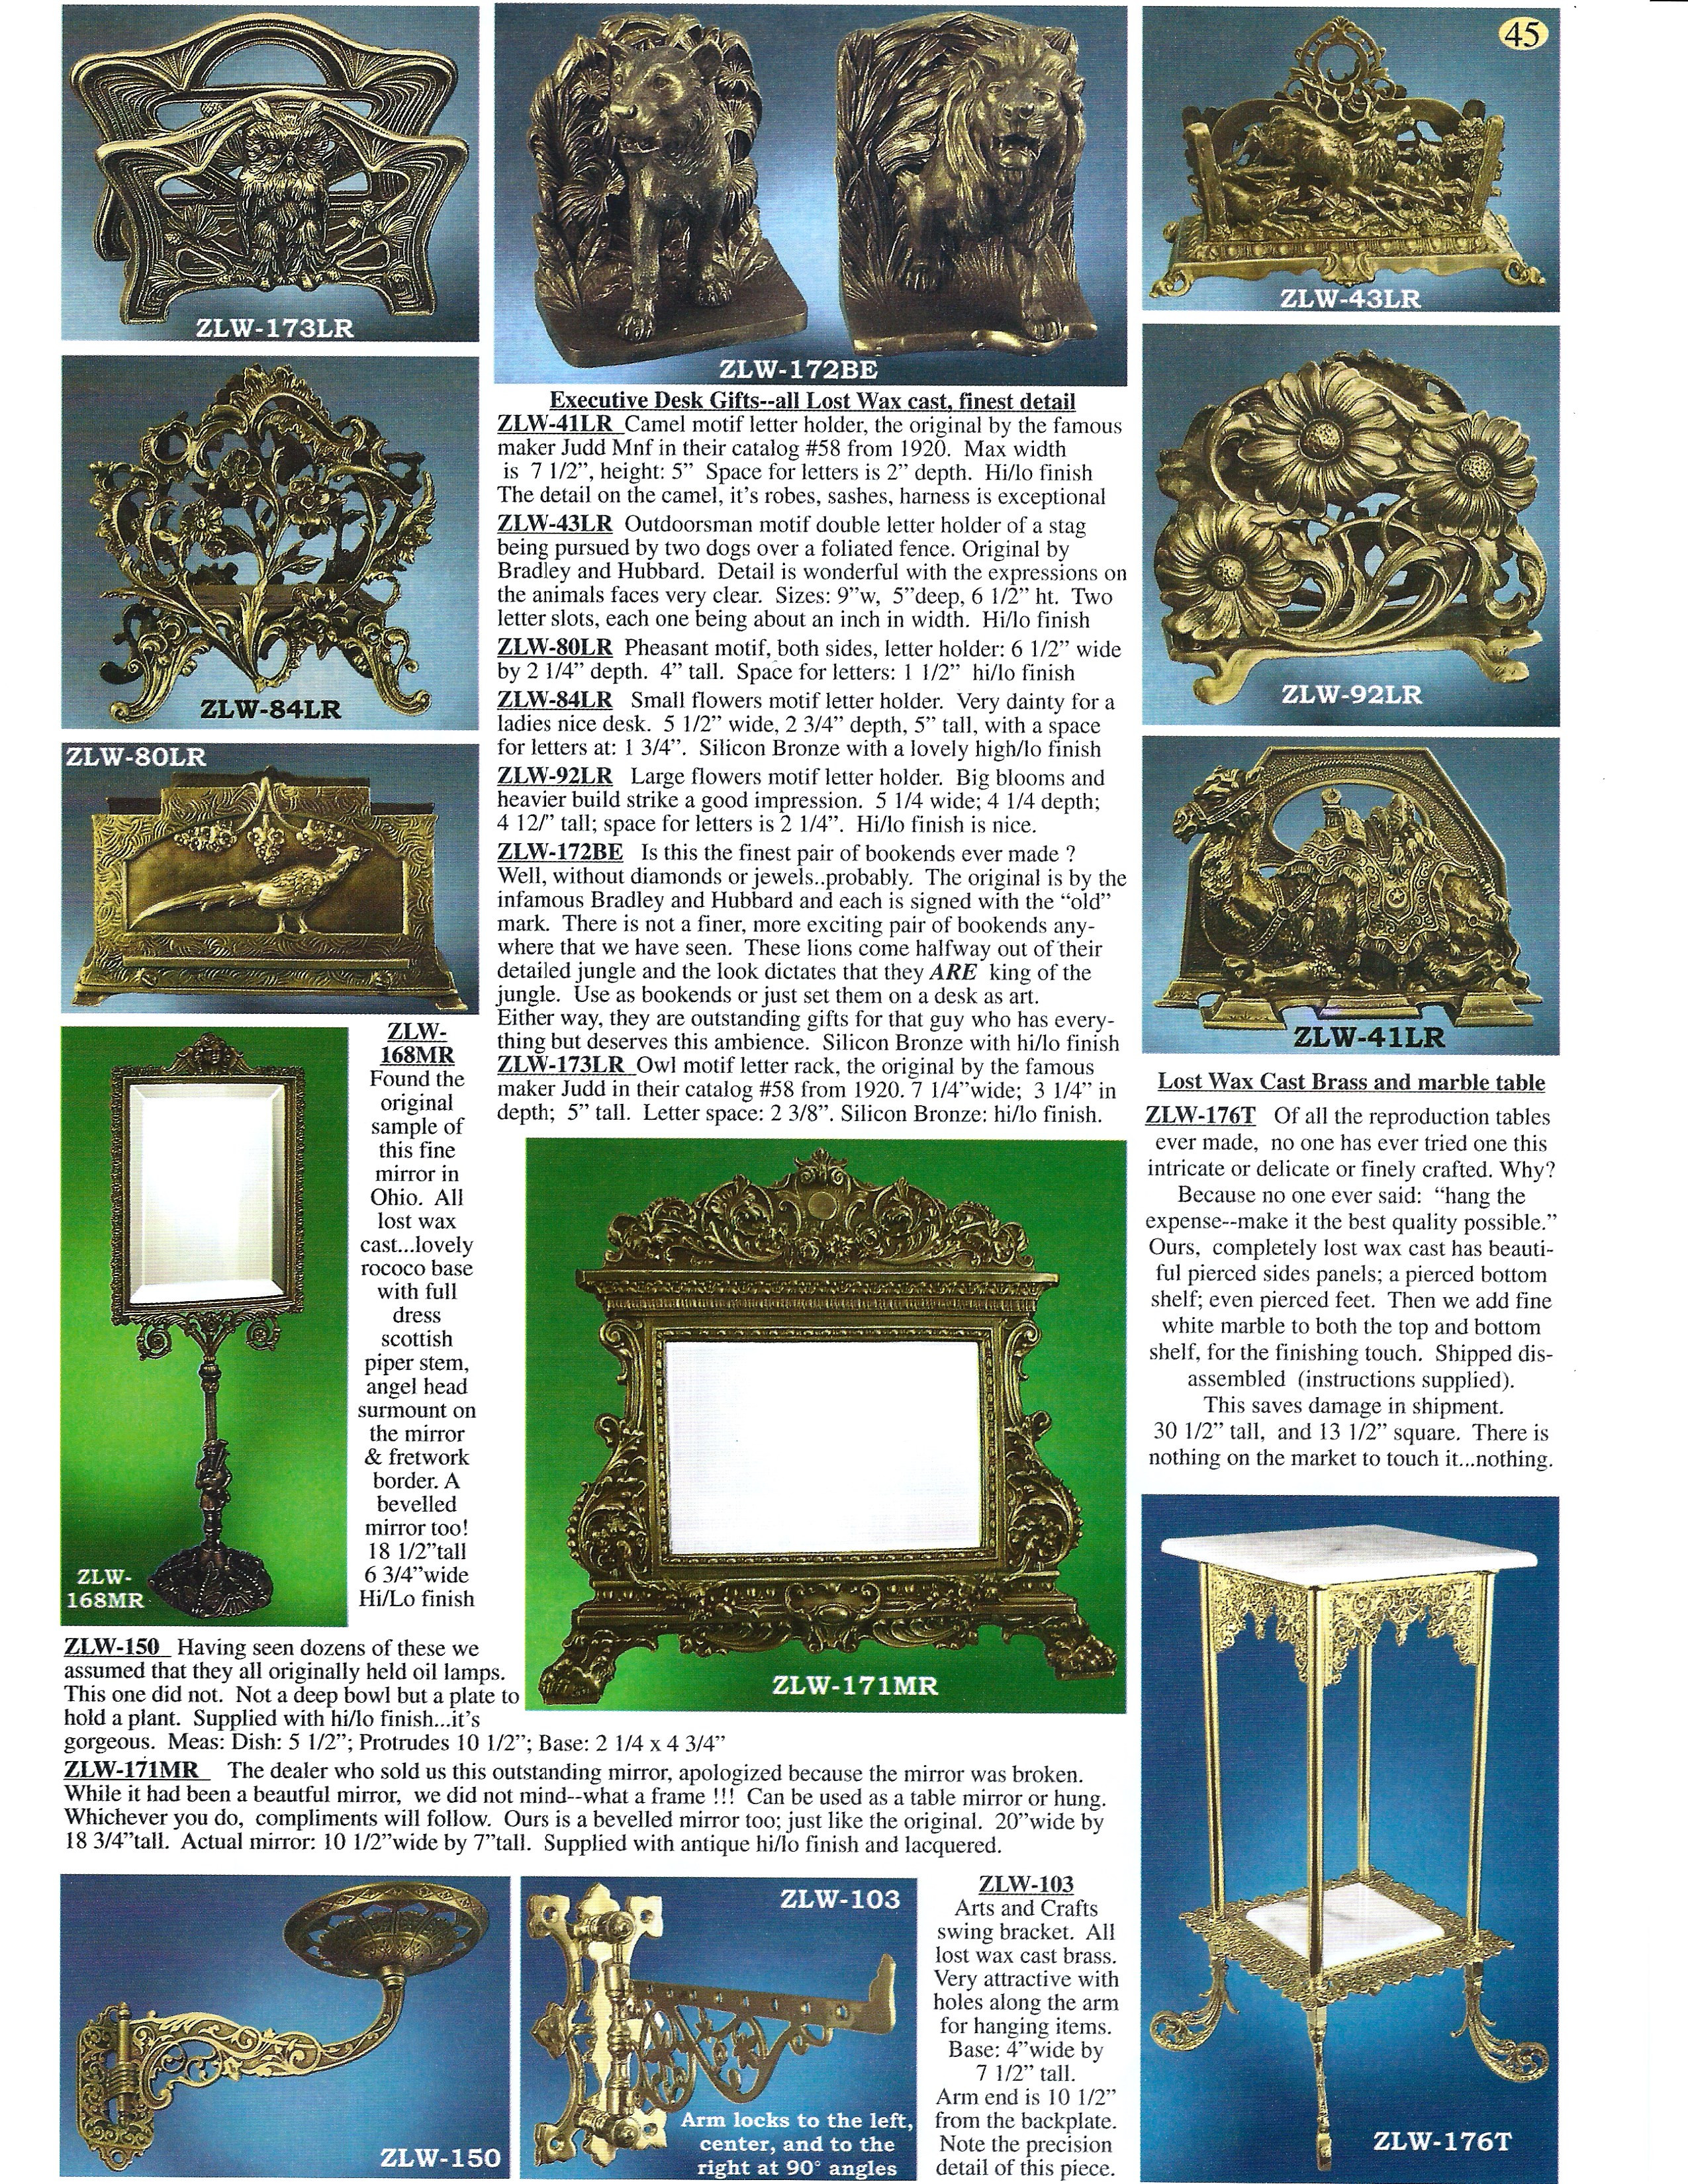 Catalog page 69